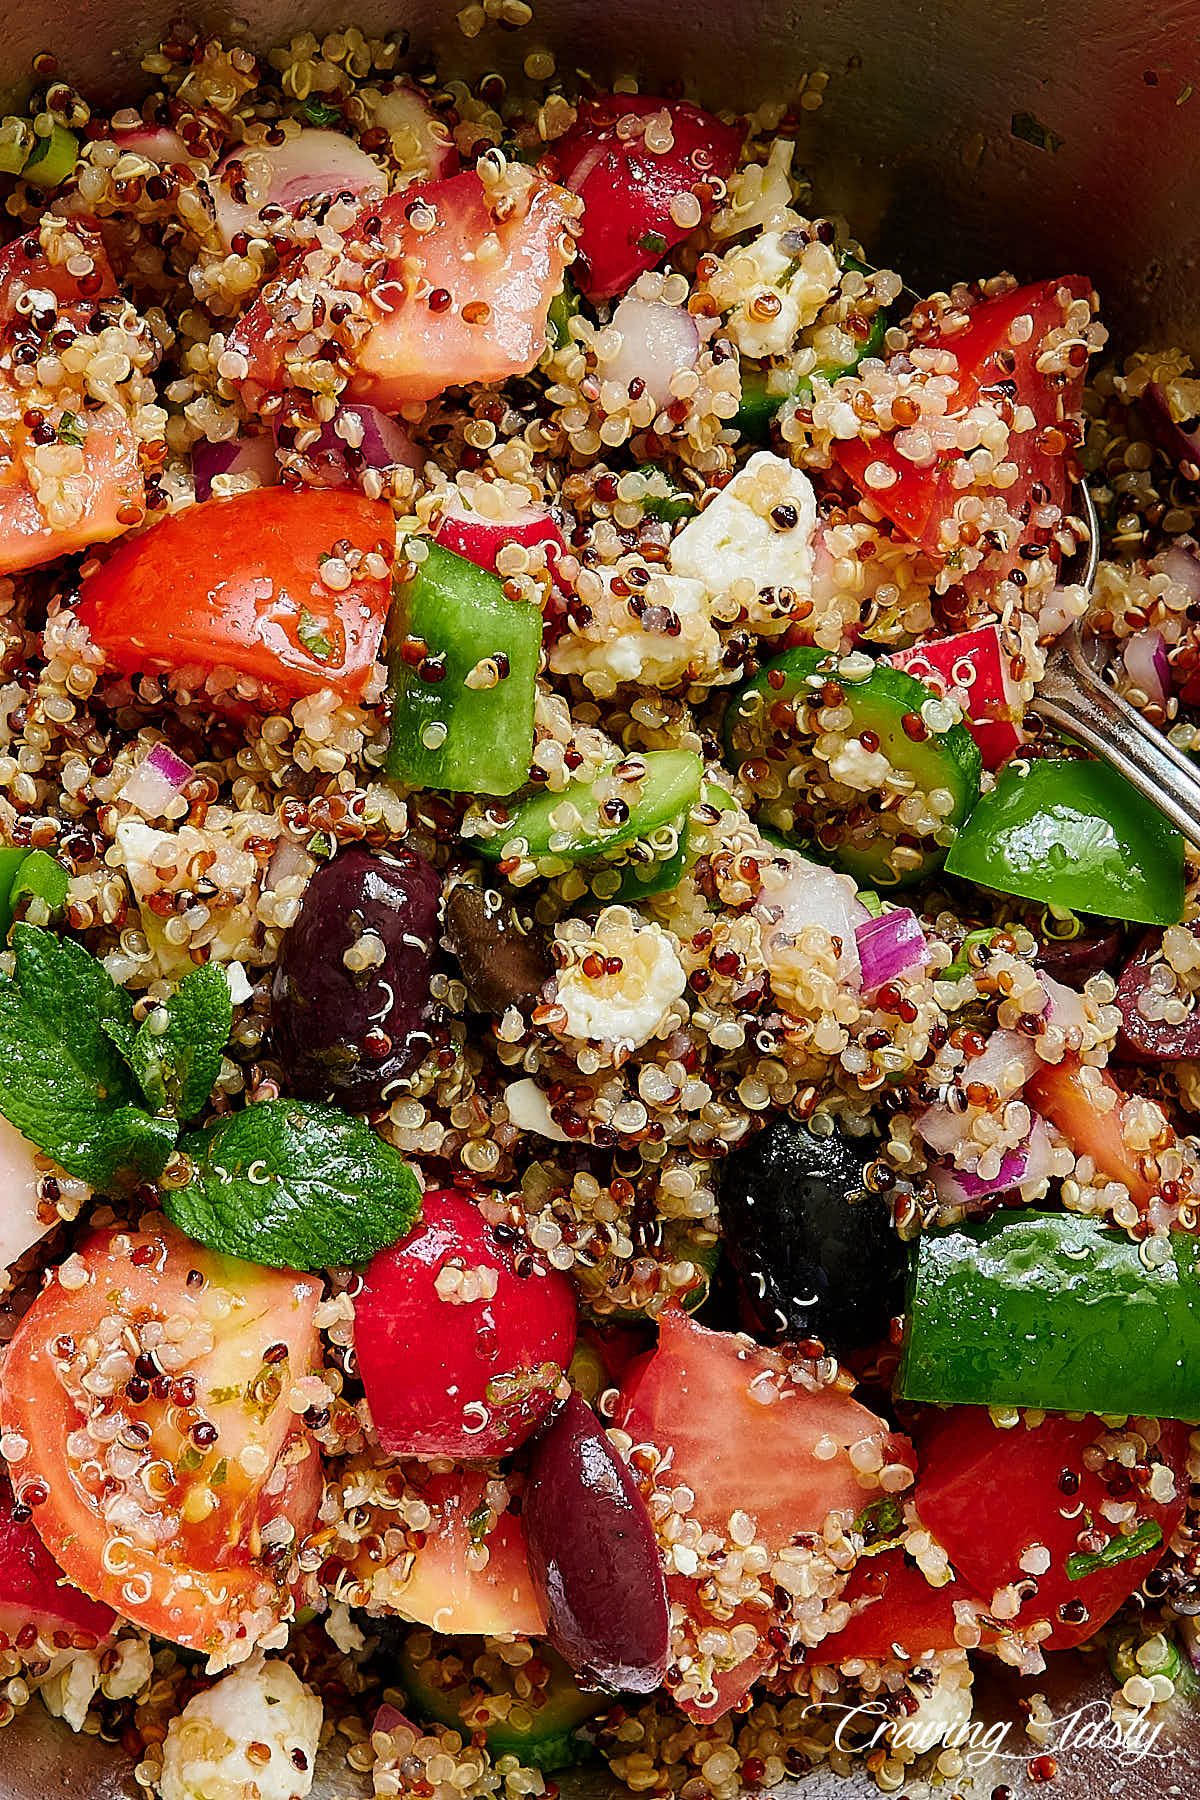 Tri-color quinoa and vegetables mixed with salad dressing in a bowl.